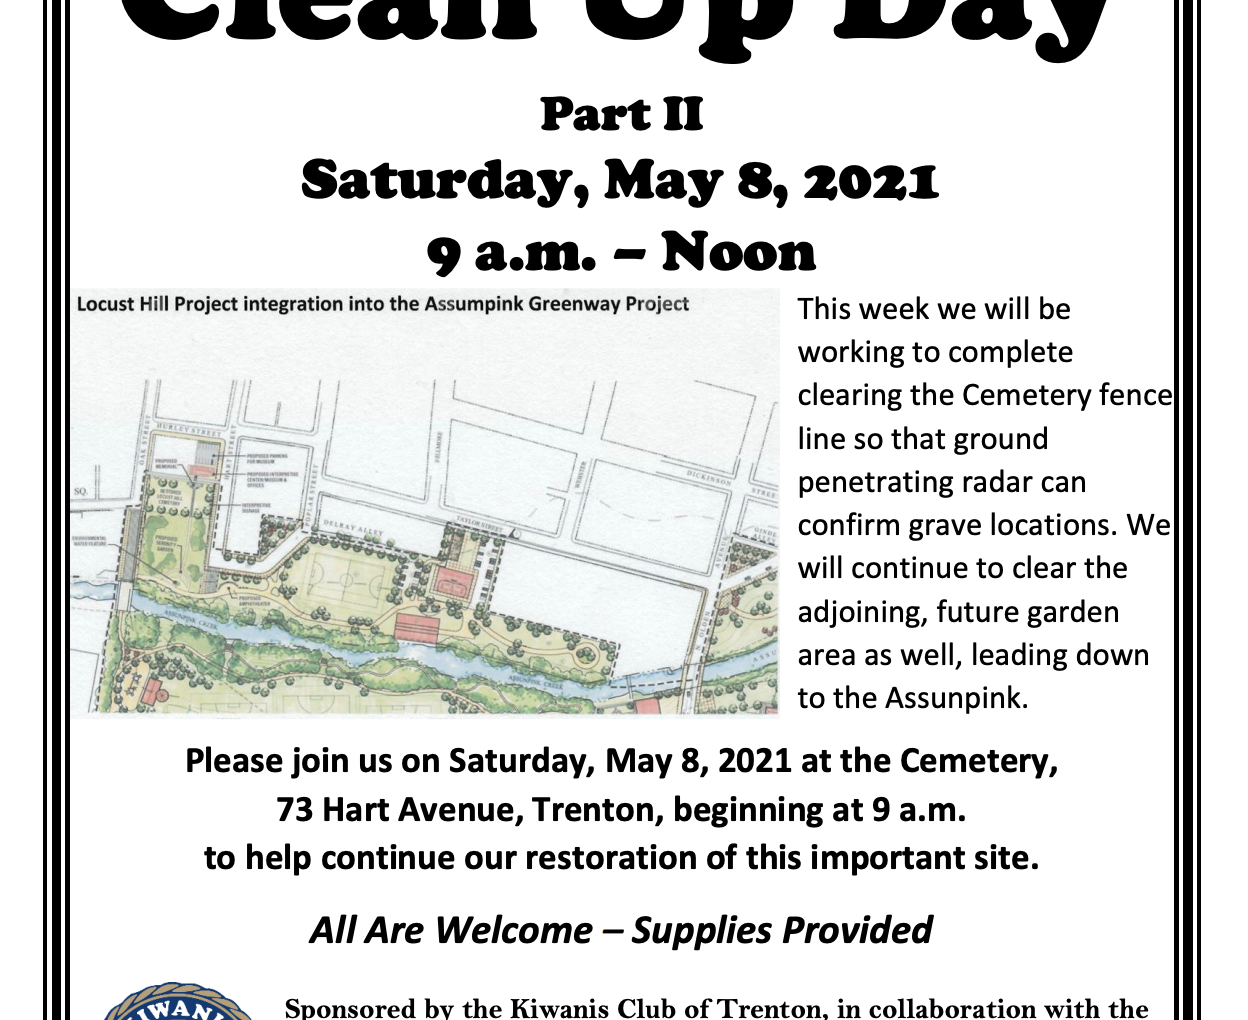 Clean Up Day Two for The Locust Hill Cemetery and Kiwanis Club of Trenton